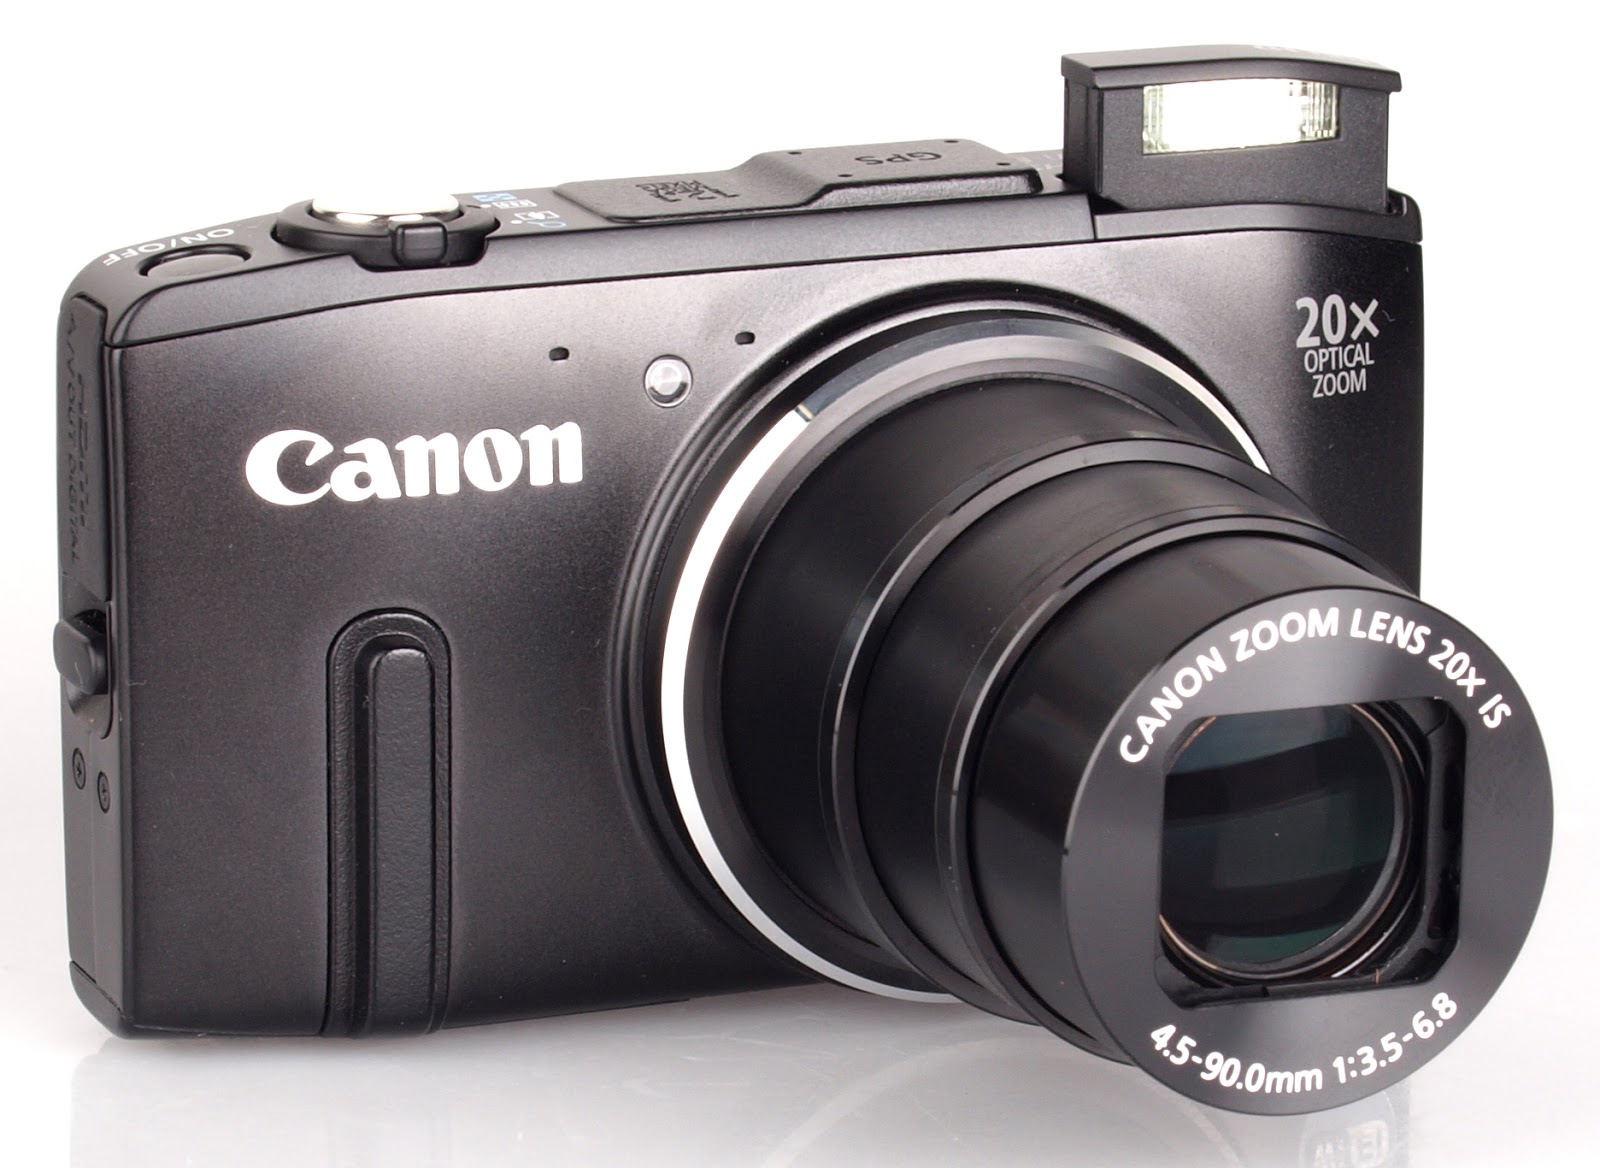 Canon Powershot Sx280 Hs Black Digital Camera Price